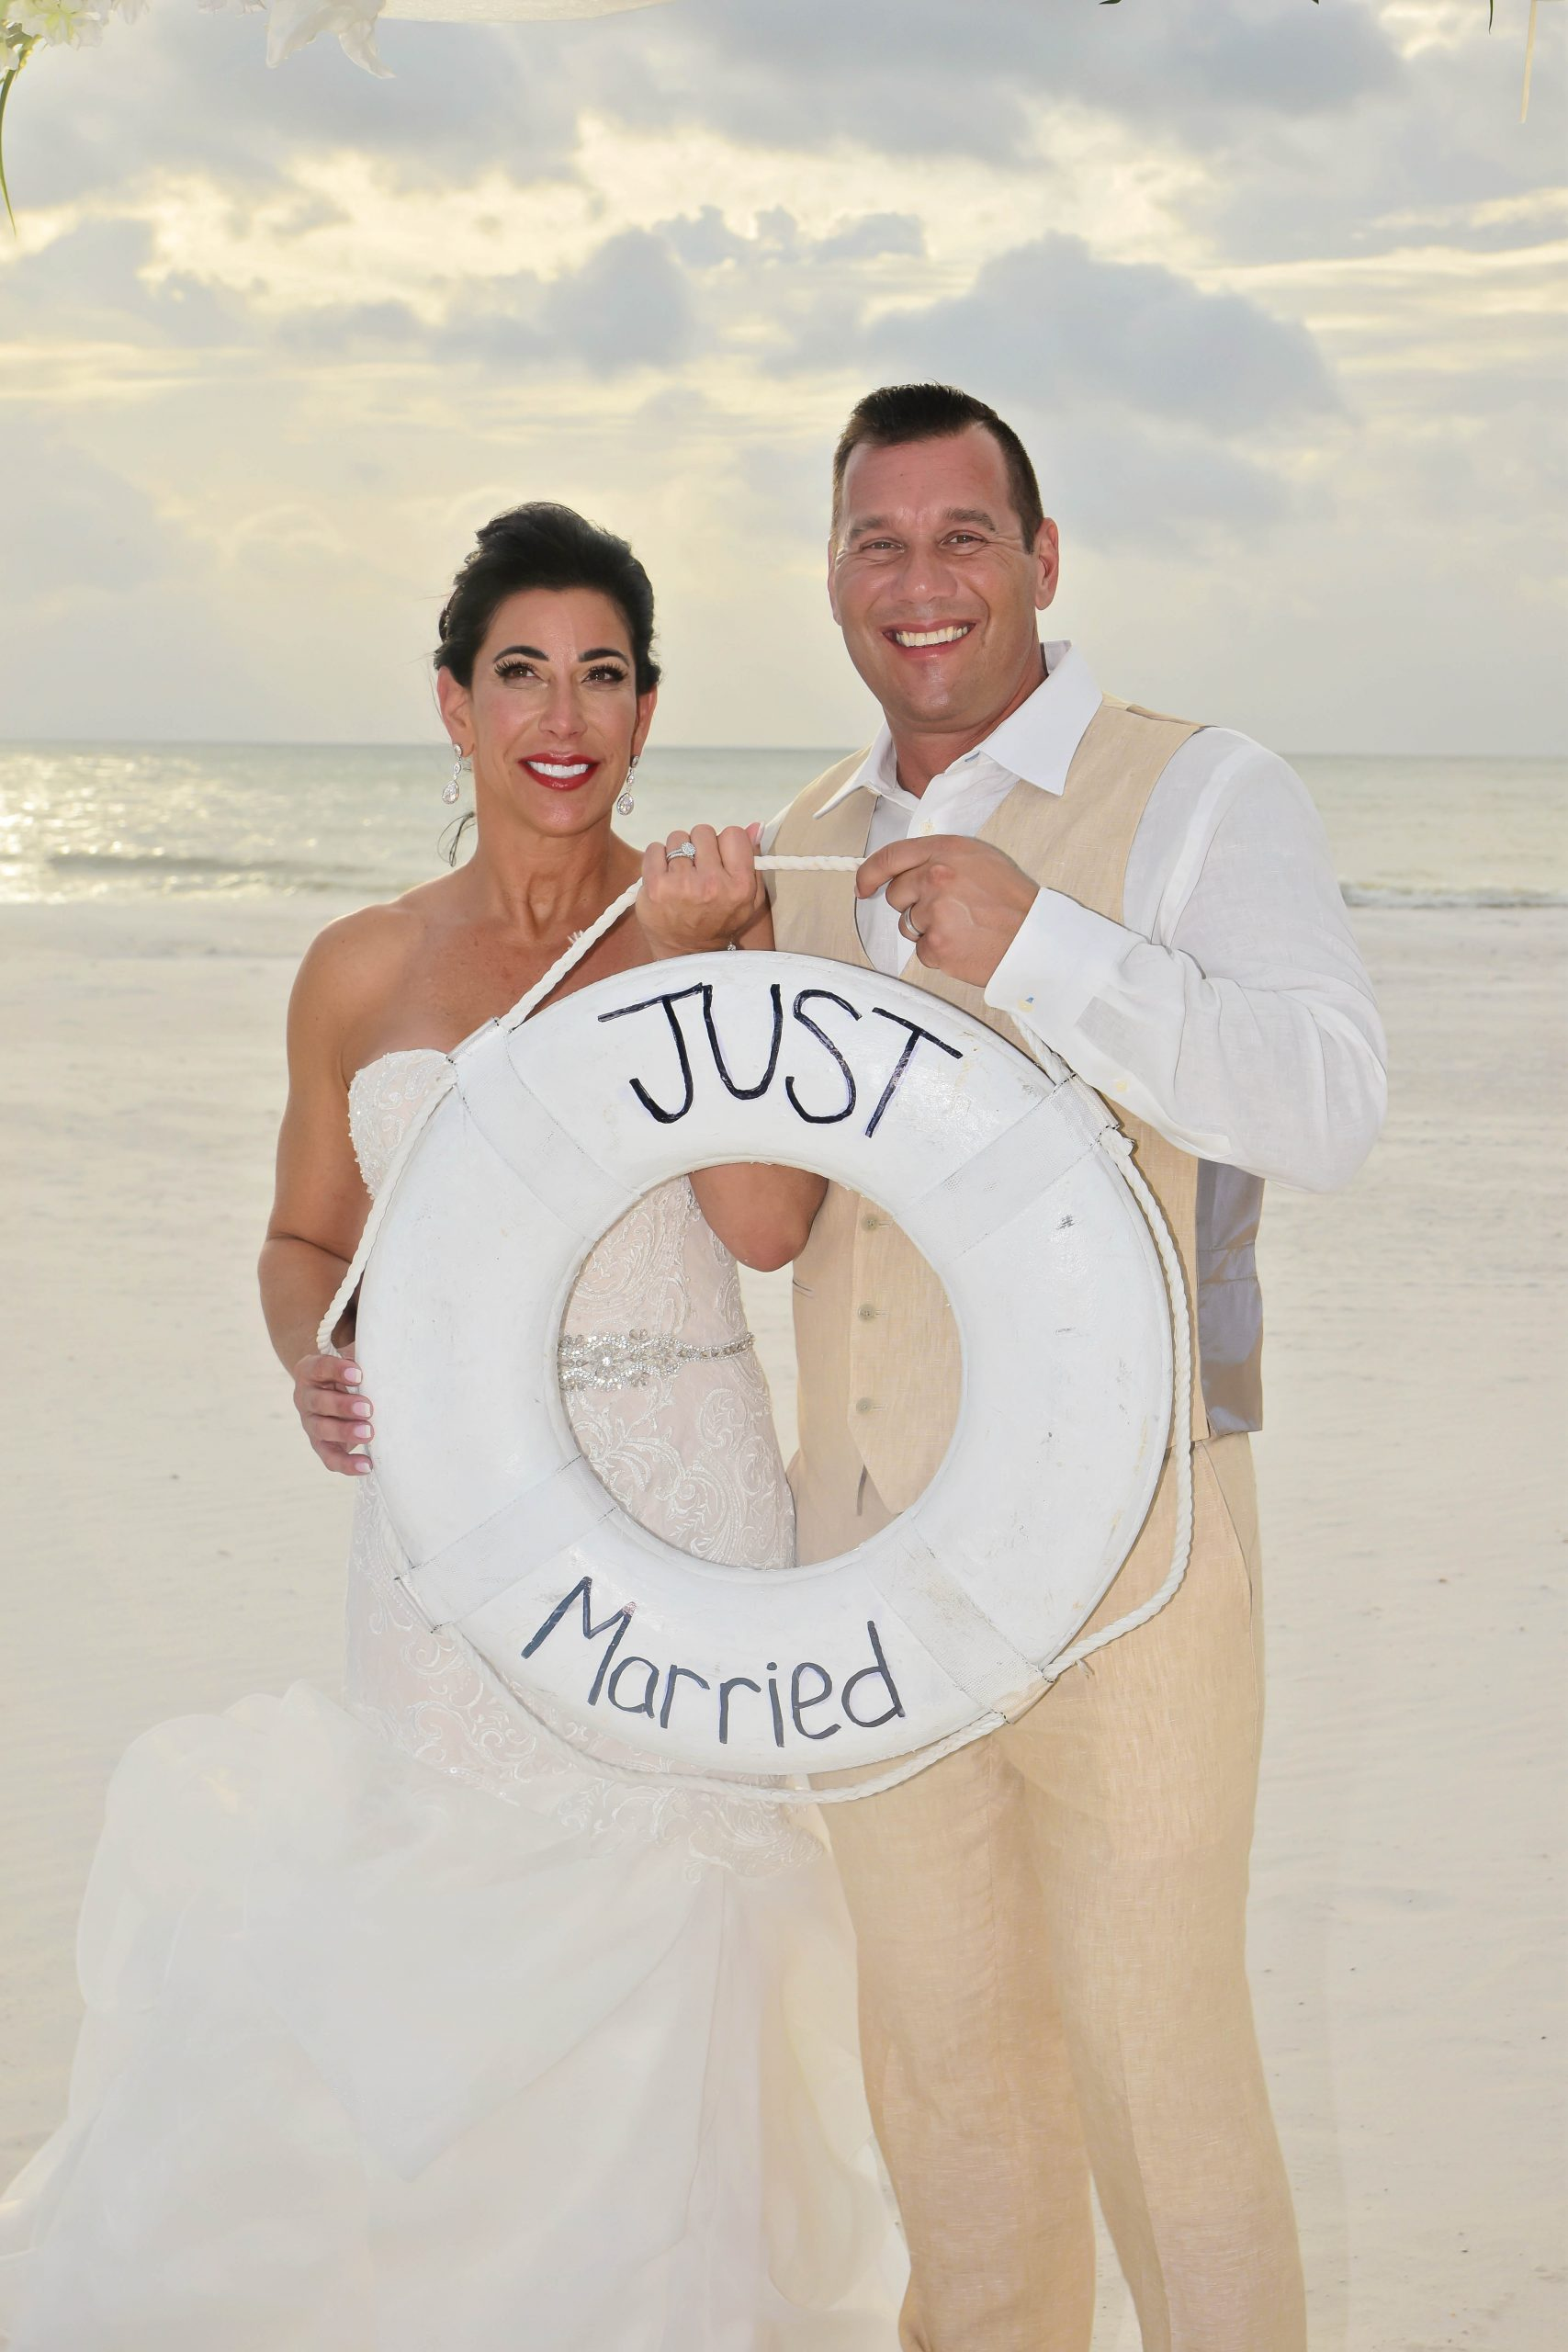 Clearwater beach just married couple poses with bouy